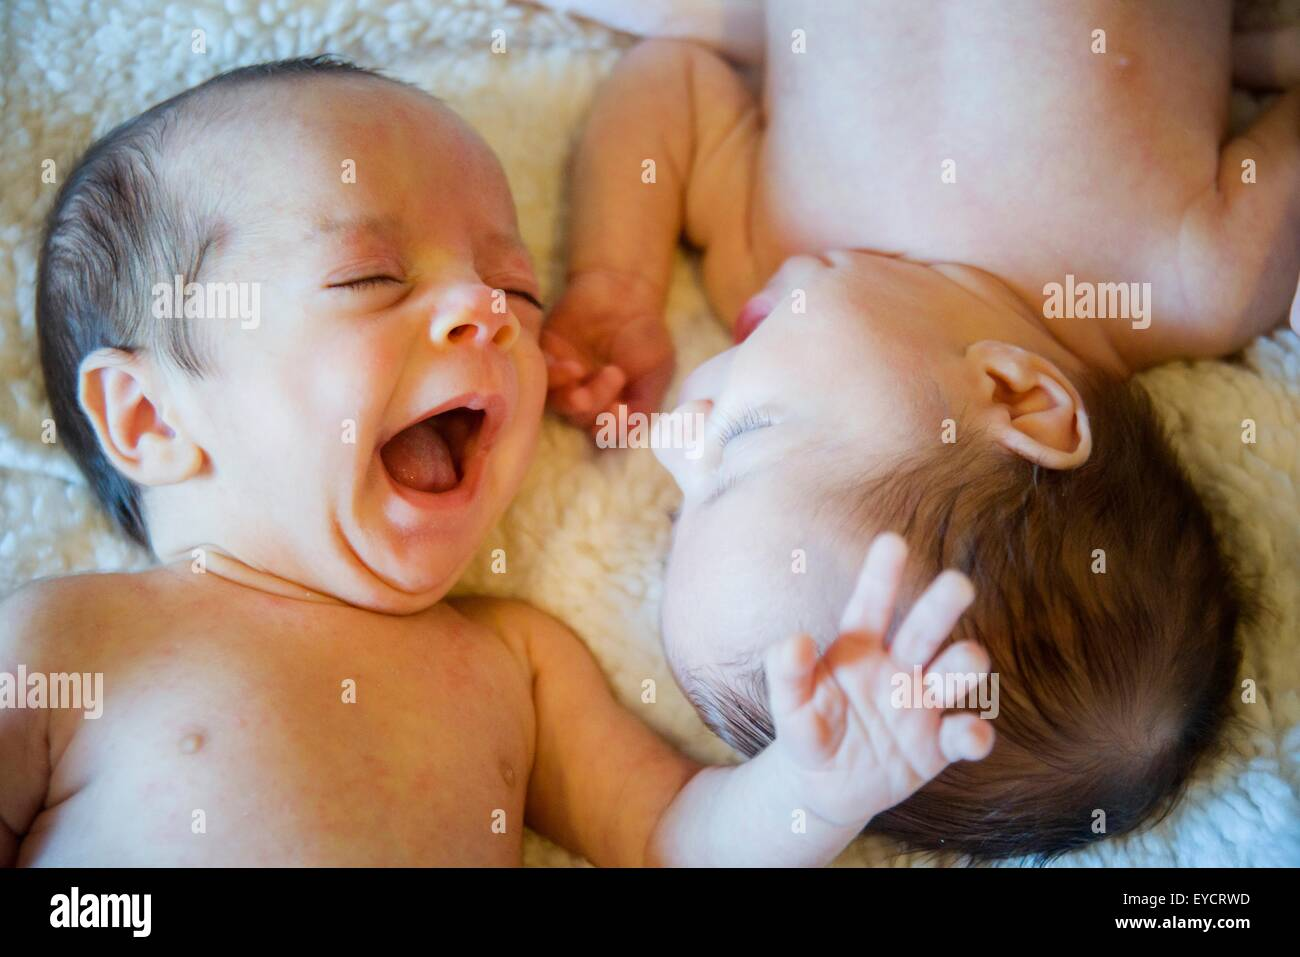 Twin baby sister and brother - Stock Image